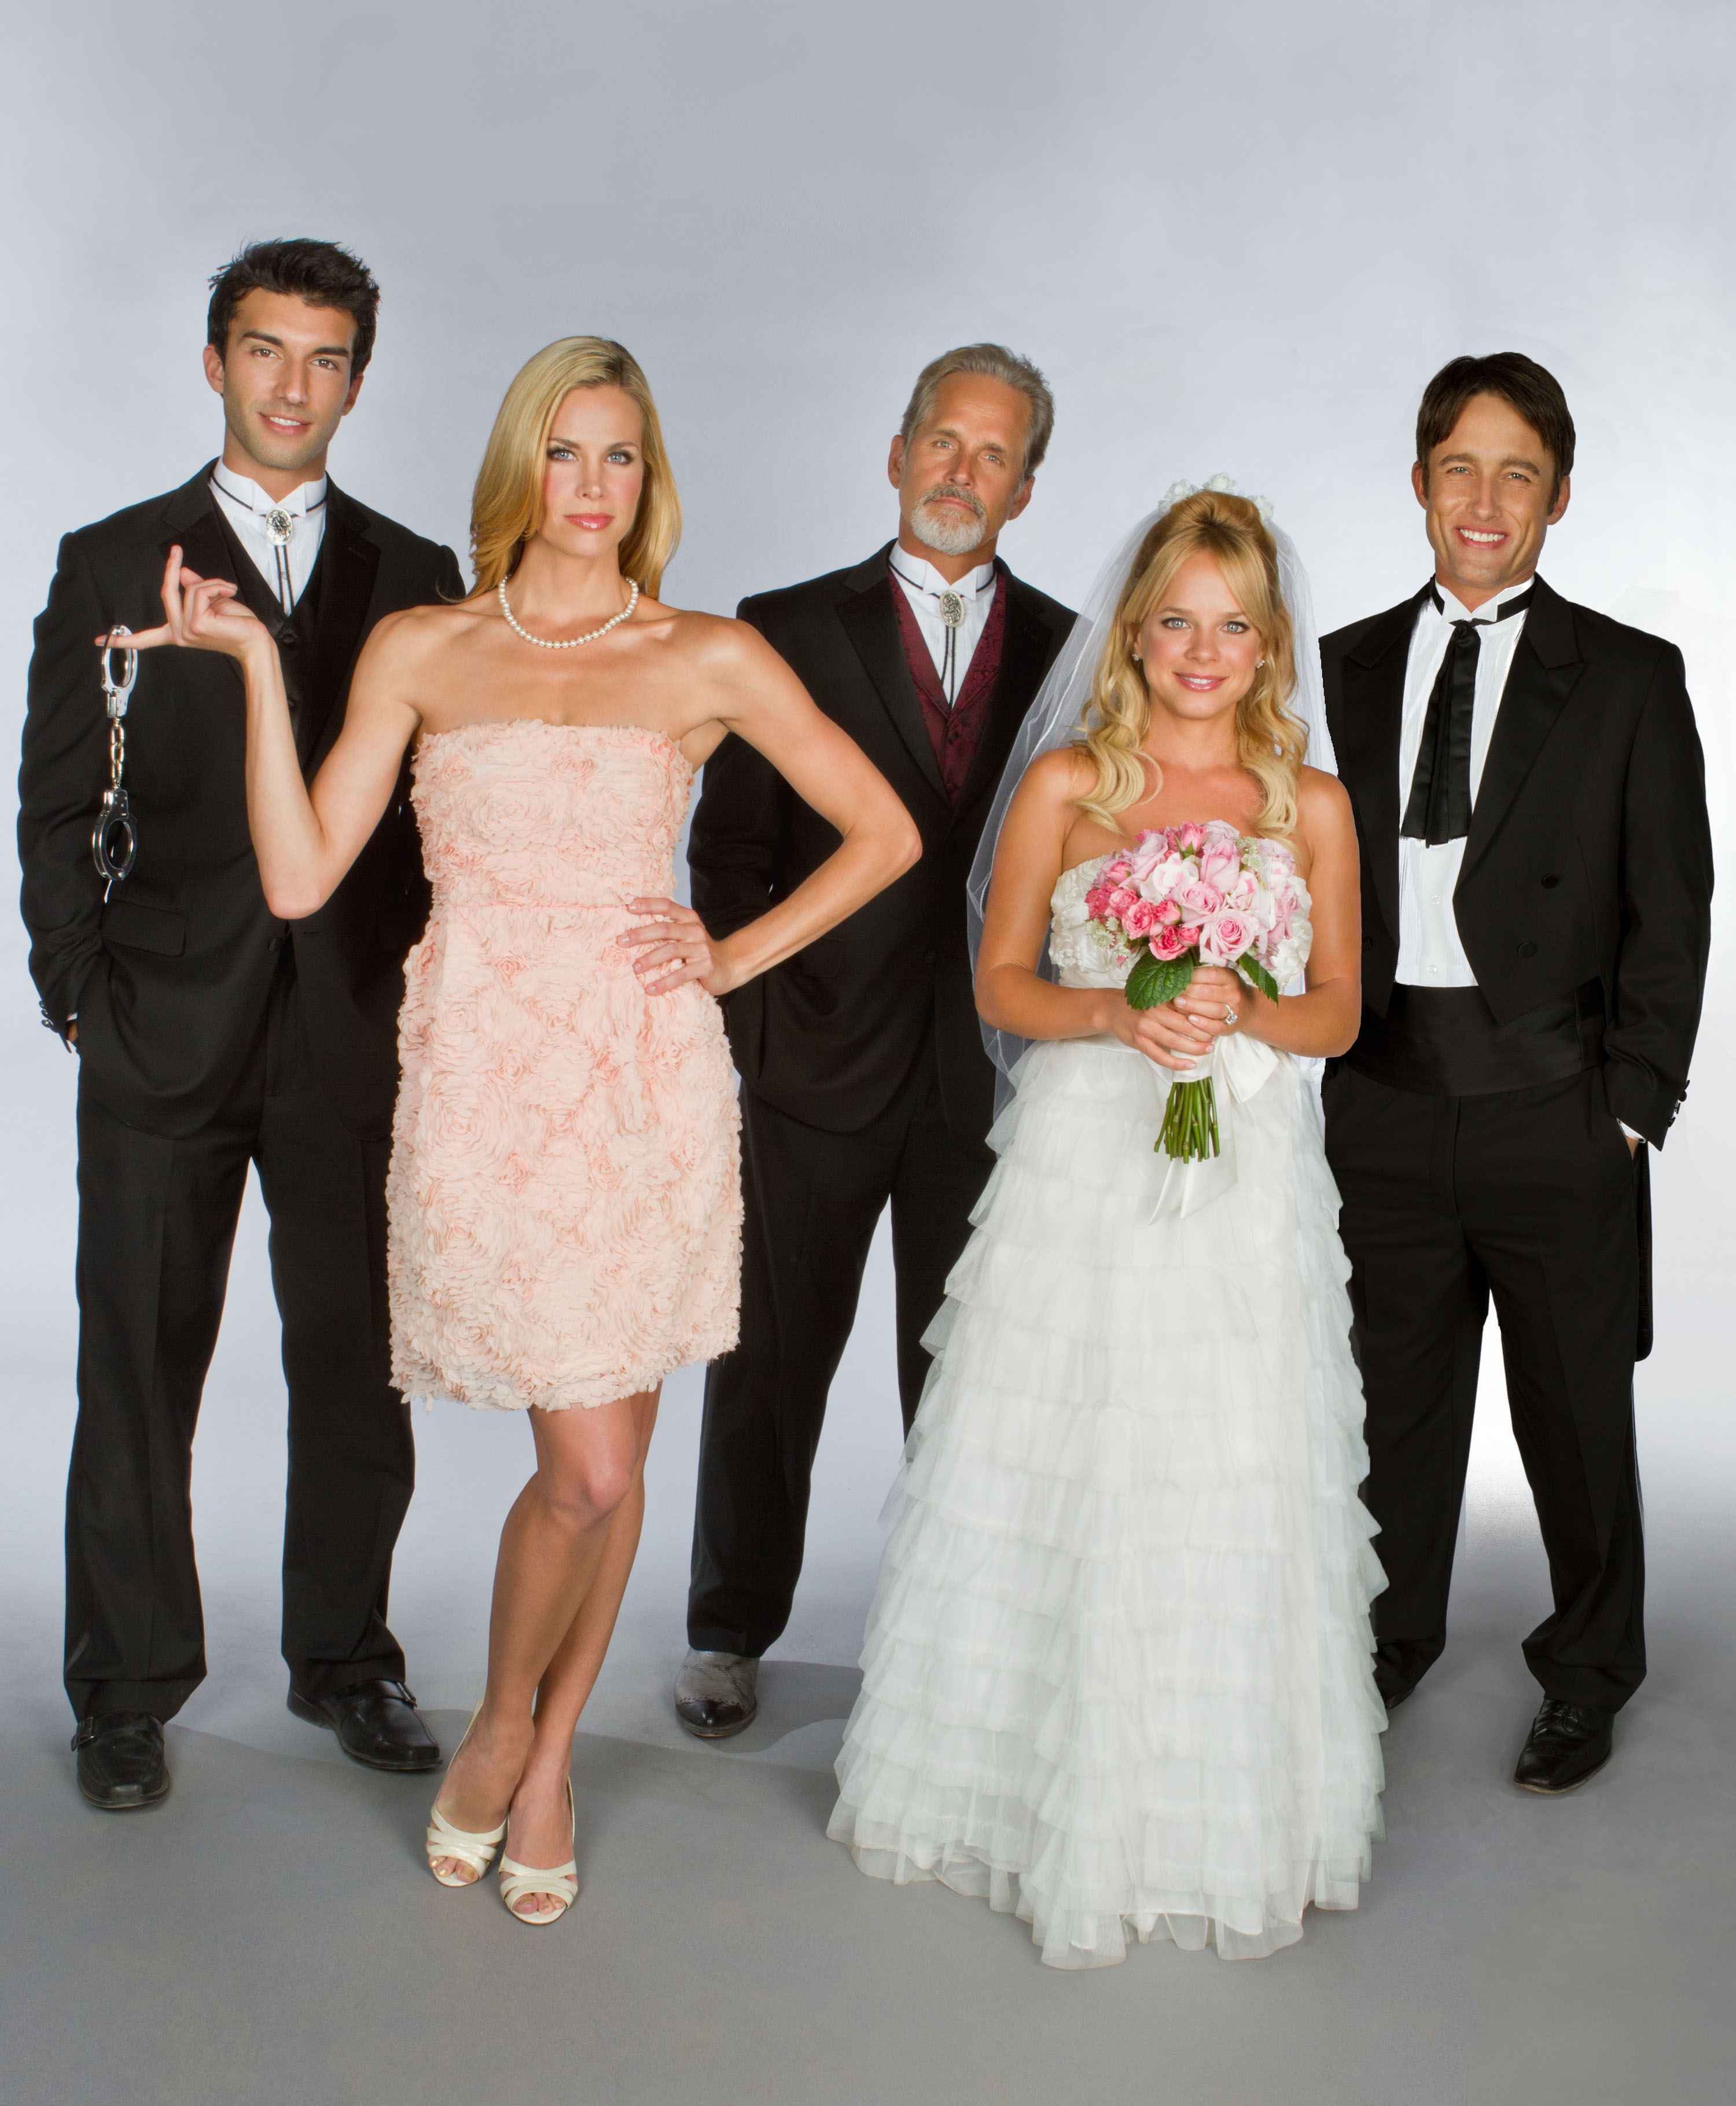 Undercover Bridesmaid premieres April 15 on Hallmark Channel